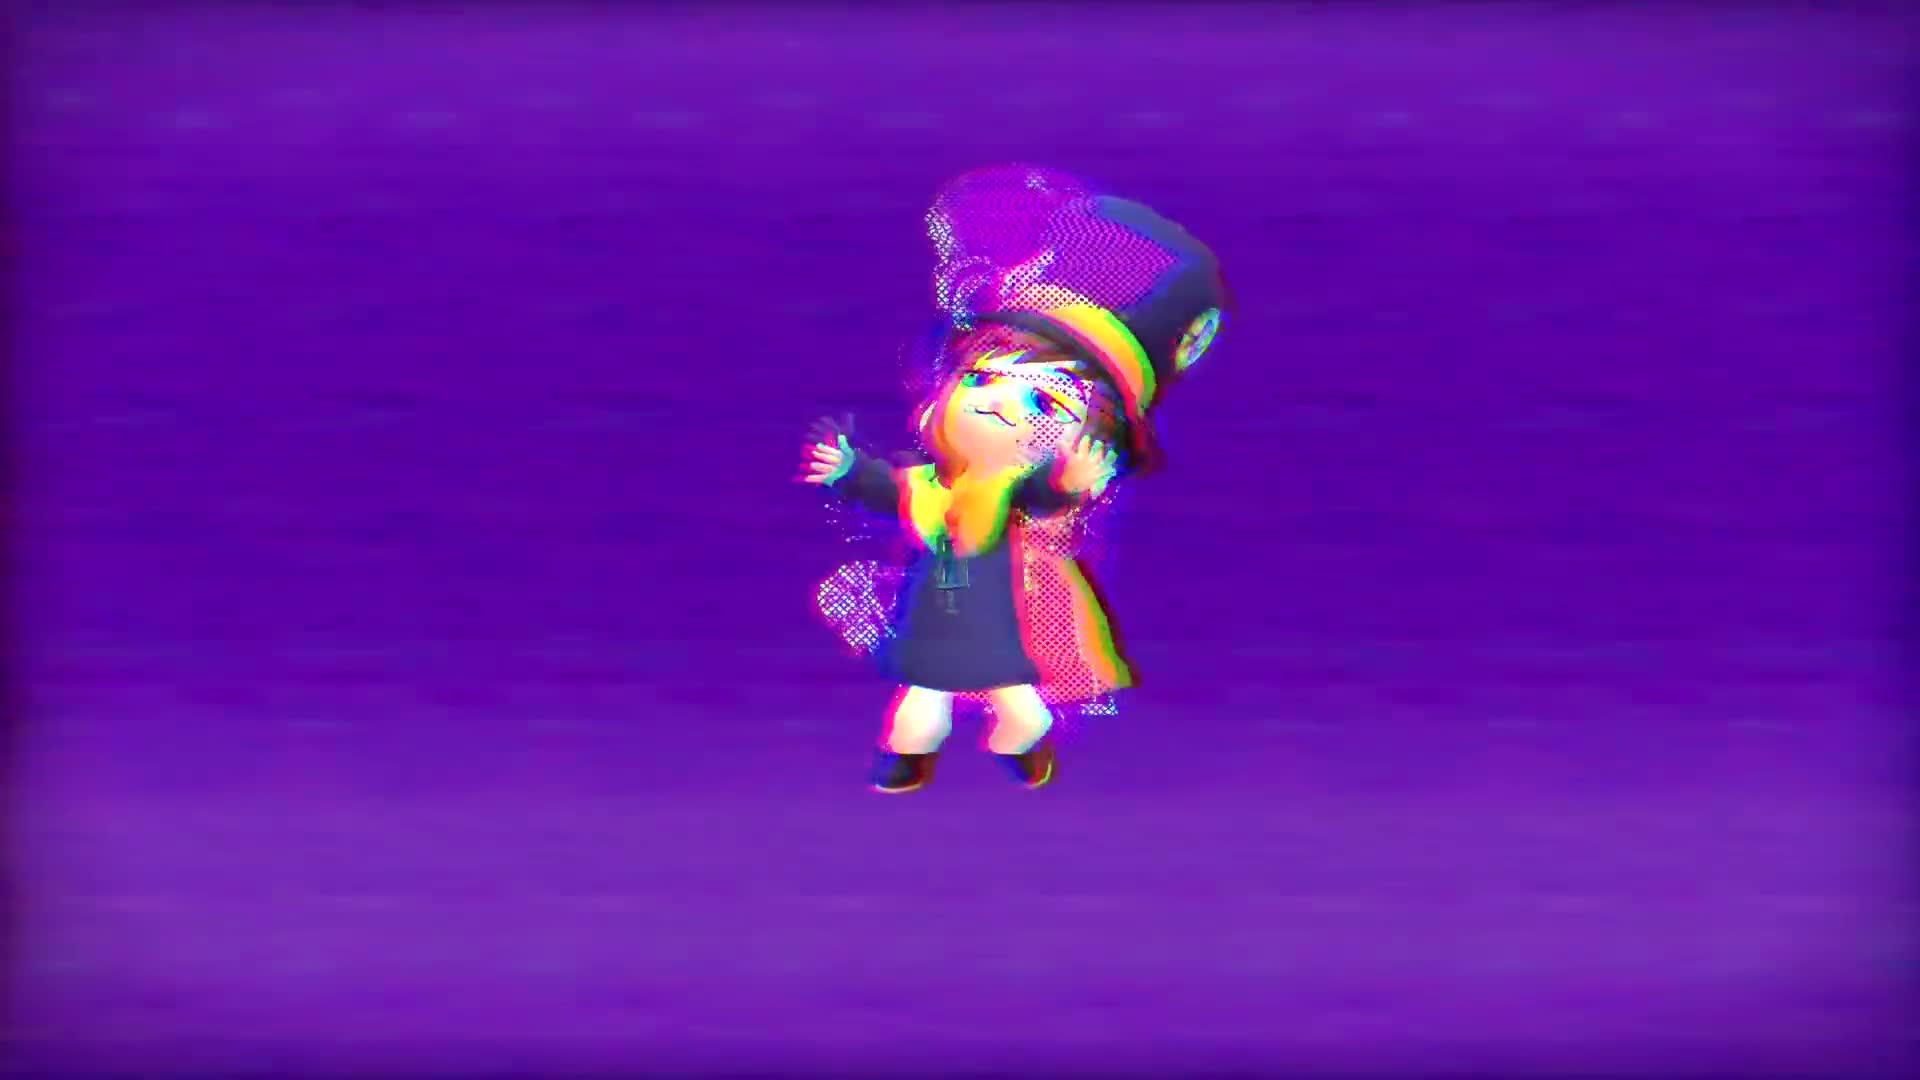 Collectathon, Gaming, Gears for Breakfast, Hat in Time, Platformer, Video Game, Peace and Tranquility GIFs